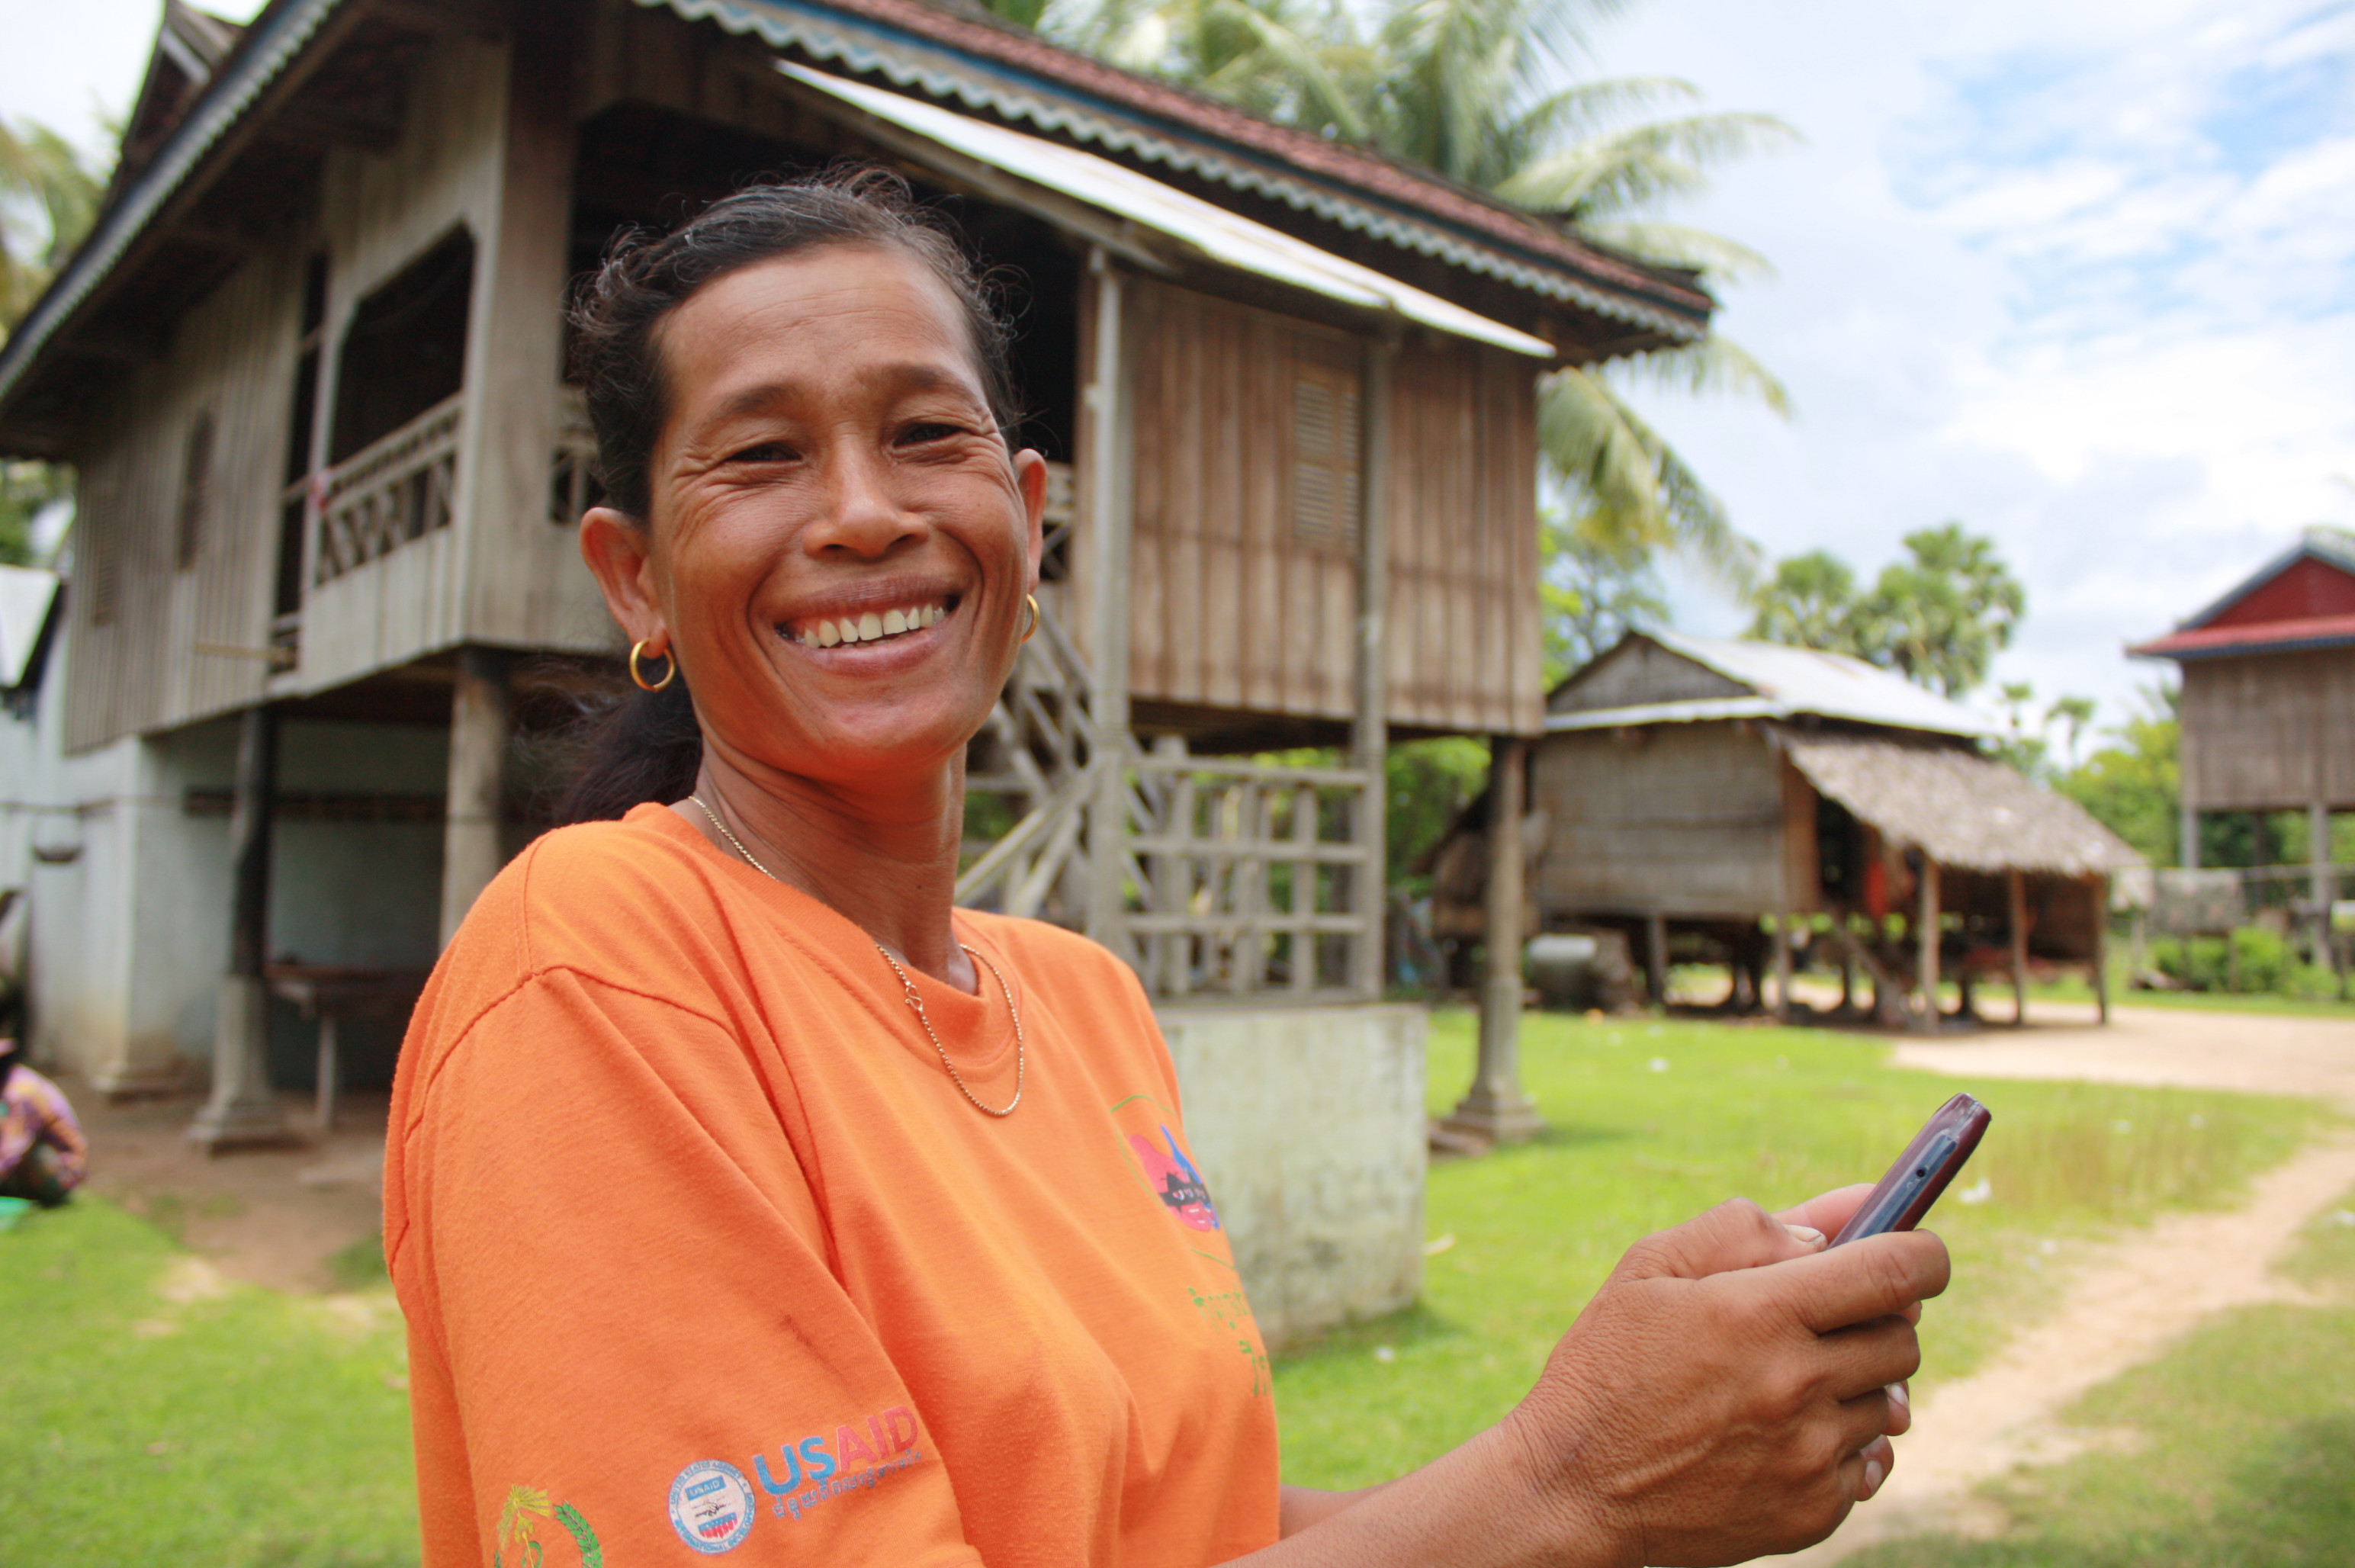 Armed with a mobile phone, Sophana Pich, 41, can now relay information to Cambodian health authorities faster. She is one of close to 3,000 village malaria workers working to contain the spread of malaria